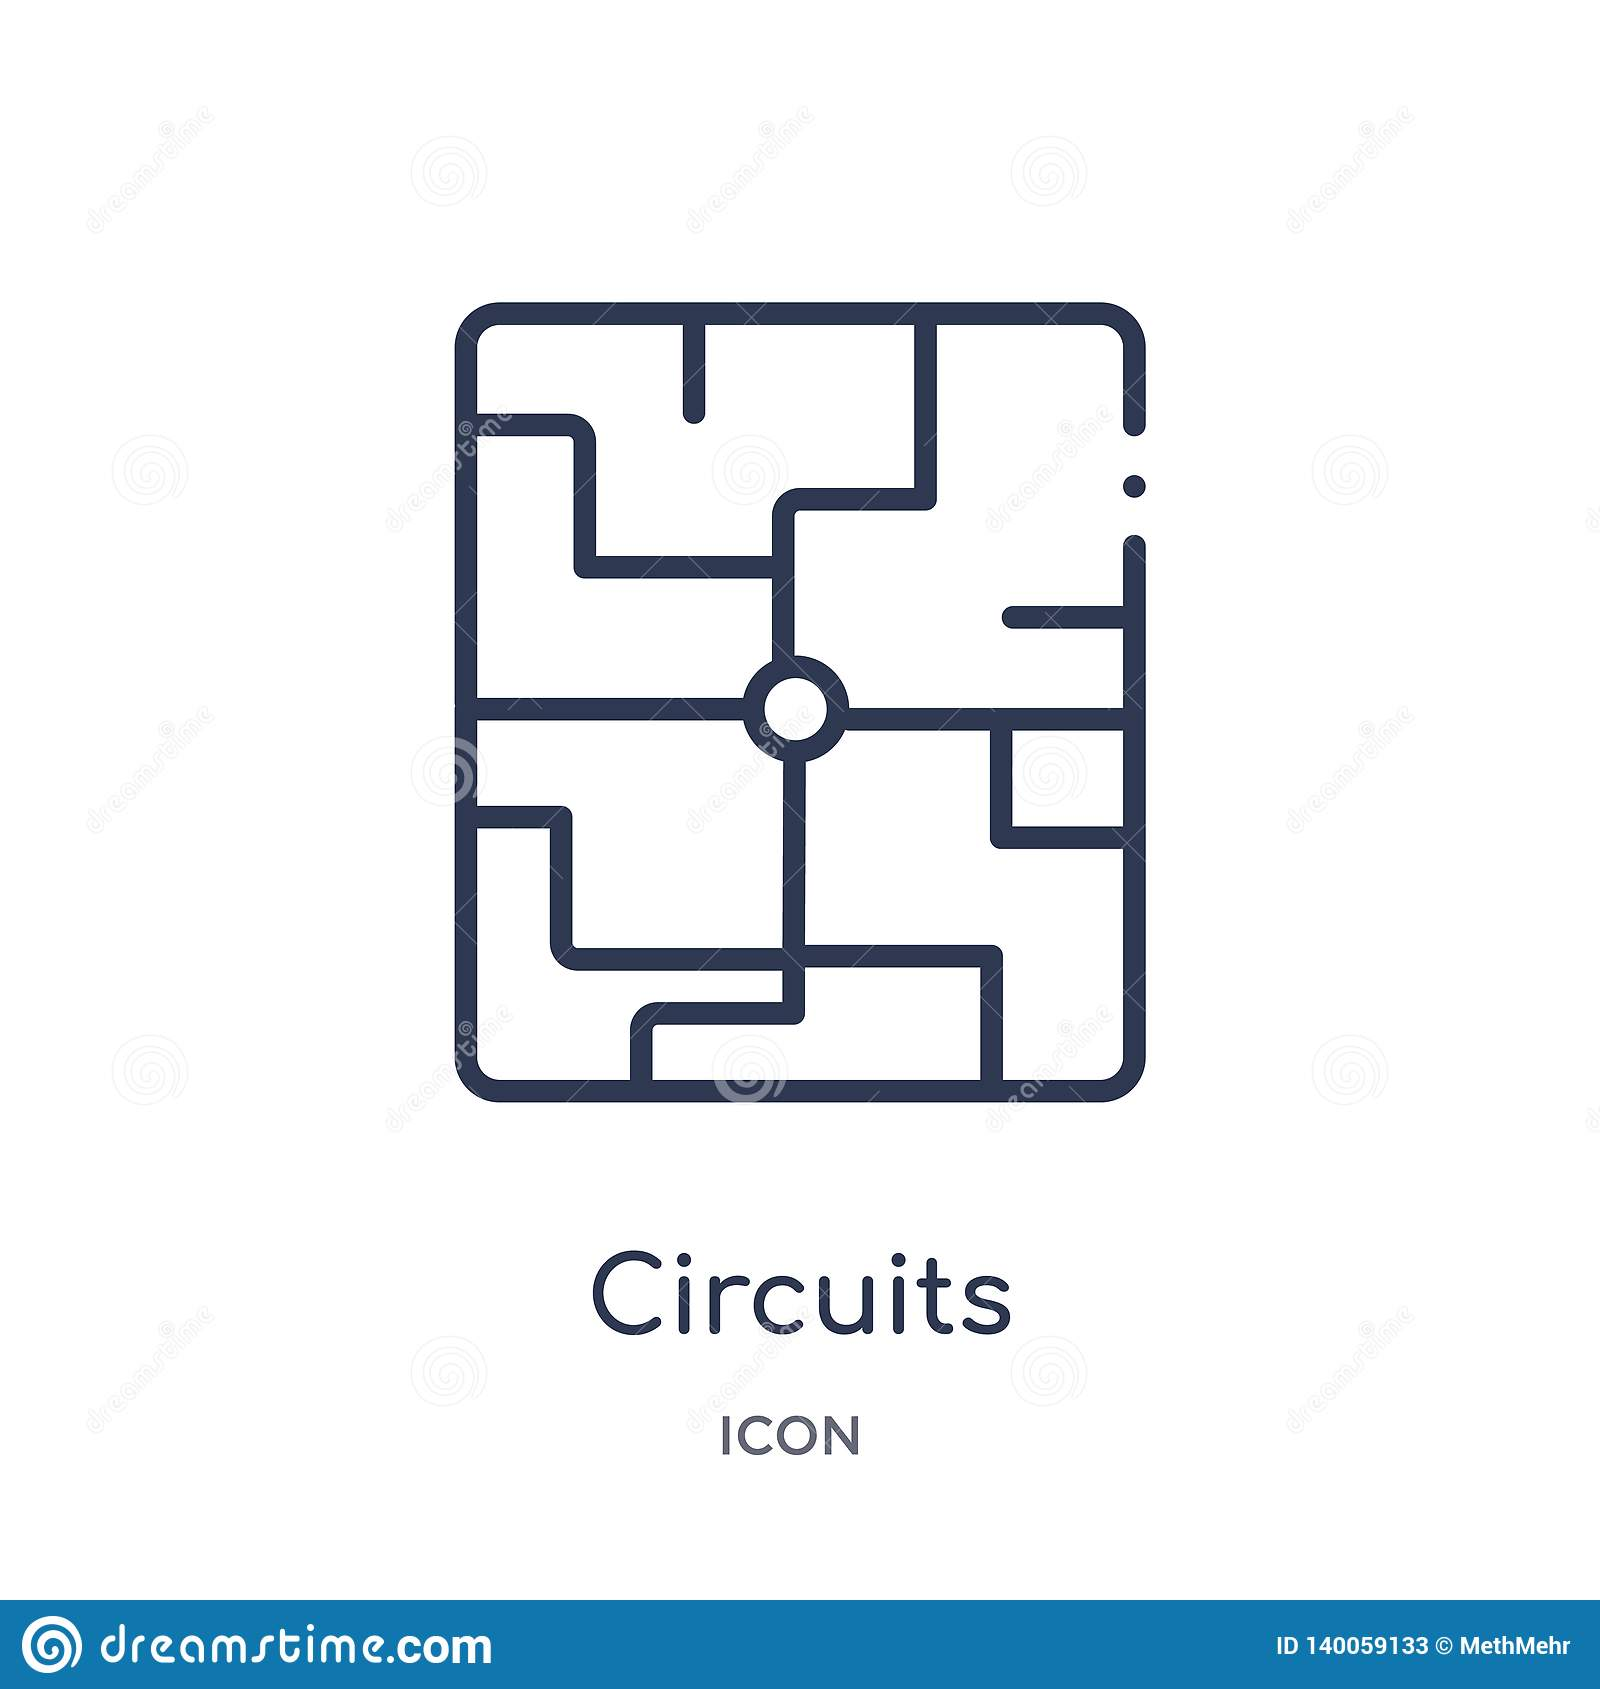 Linear circuits icon from Hardware outline collection. Thin line circuits icon isolated on white background. circuits trendy